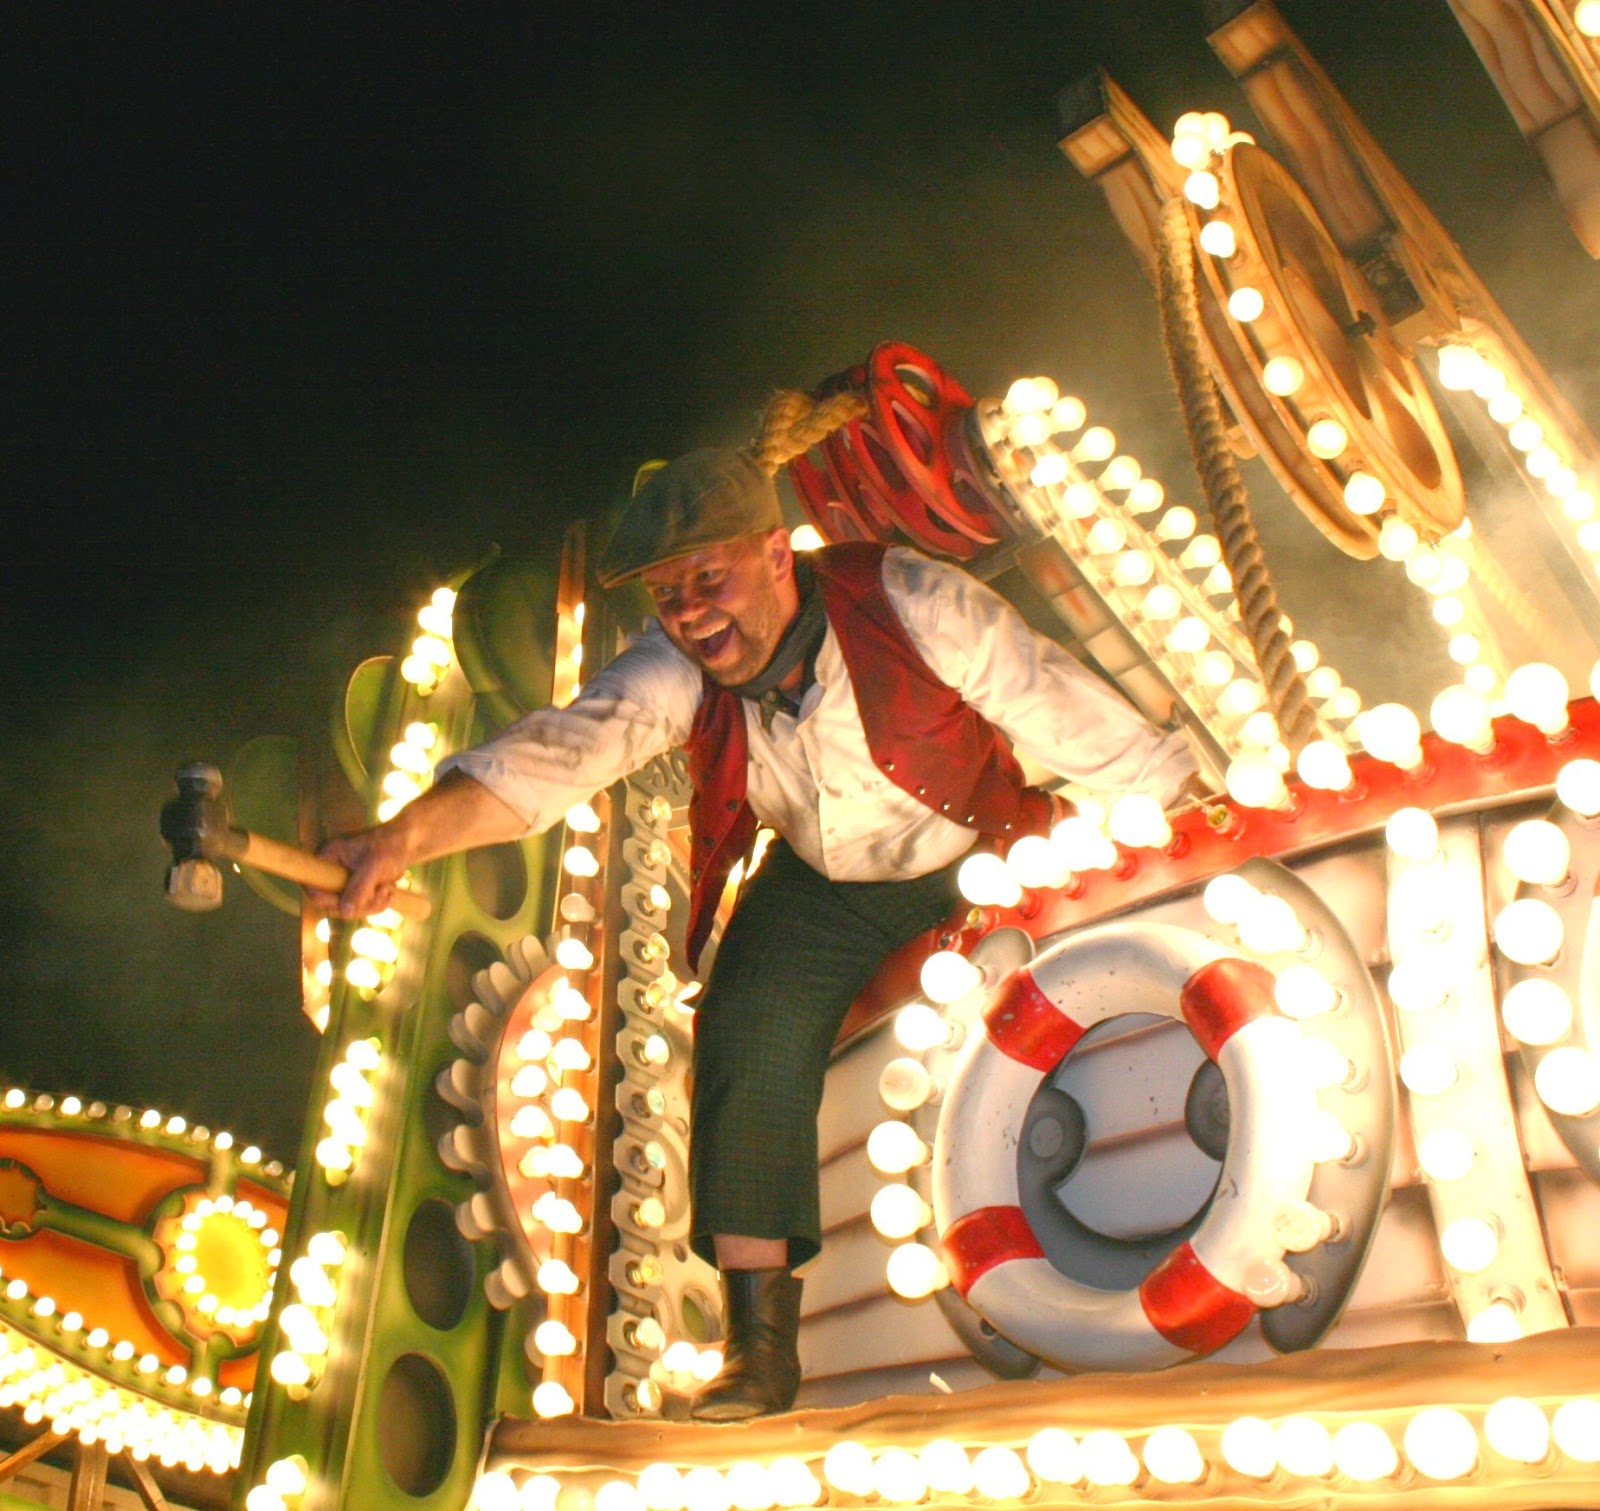 Somerset Carnival Season 2014 - Gremlins Carnival Club with 'Brunel's Kingdom- The Shipyard'